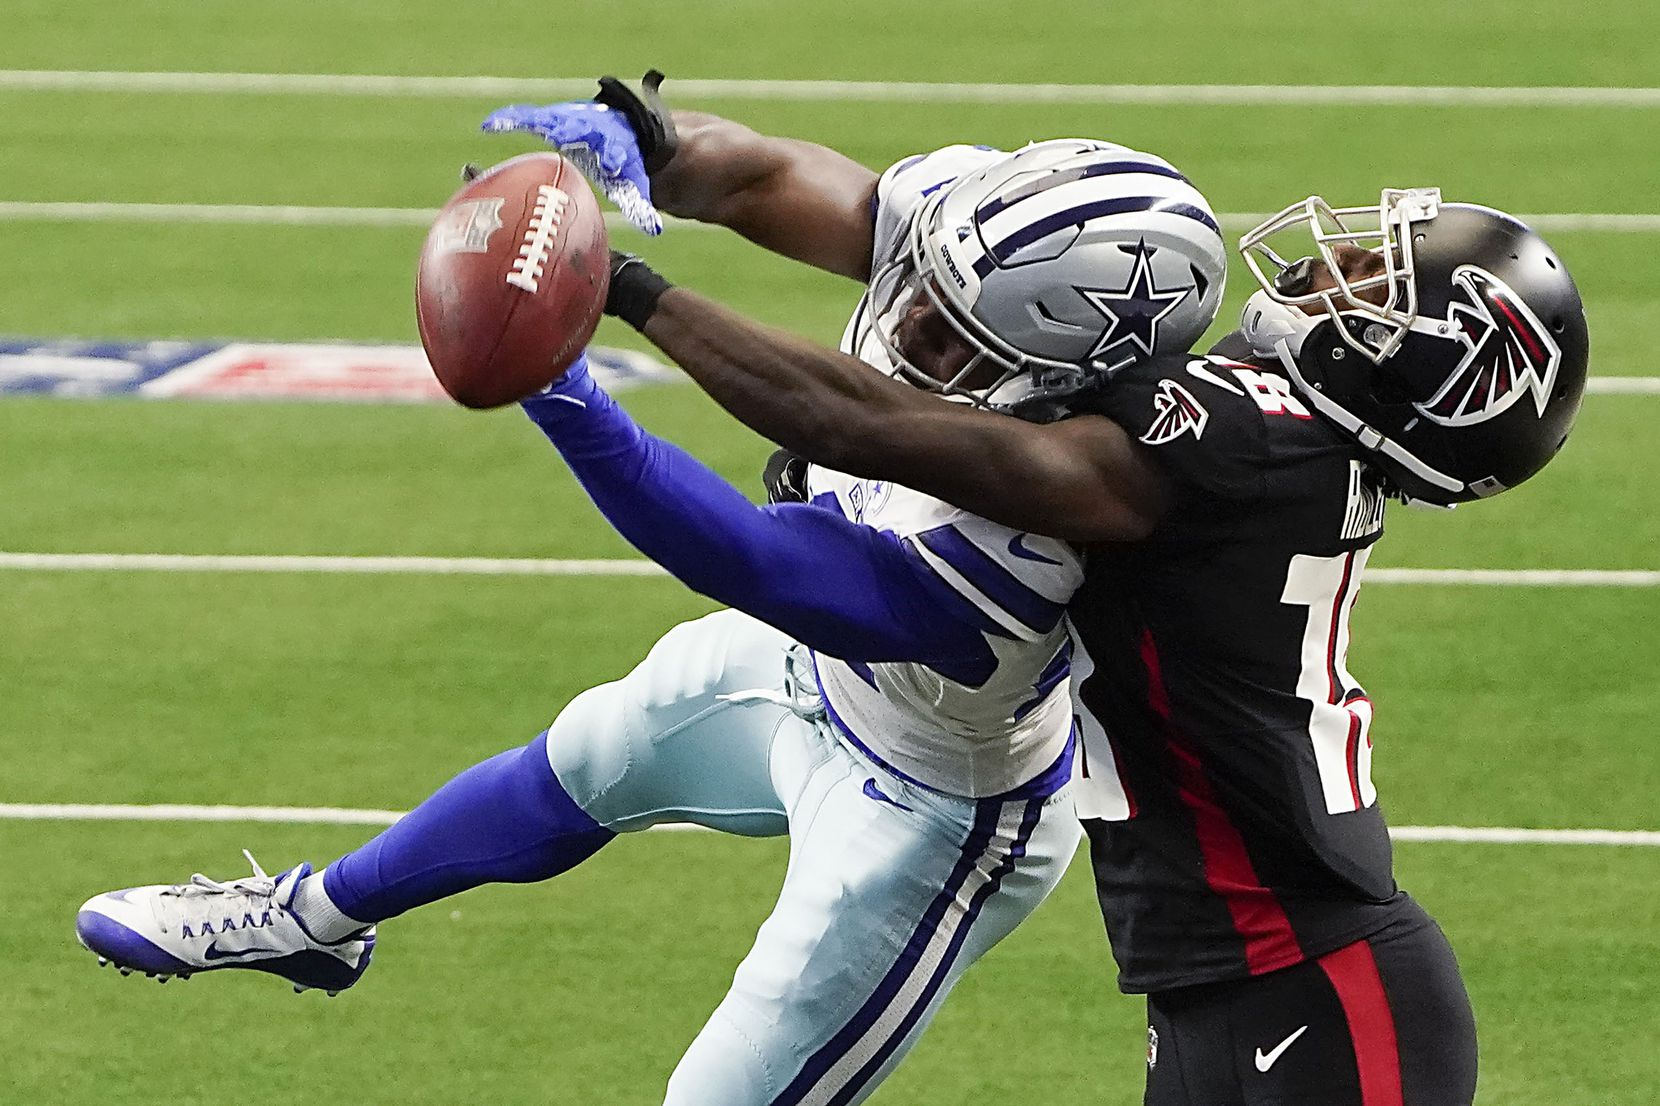 FILE - Cowboys cornerback Chidobe Awuzie (24) breaks up a pass intended for Falcons wide receiver Calvin Ridley (18) during the first quarter of a game on Sunday, Sept. 20, 2020, at AT&T Stadium in Arlington.